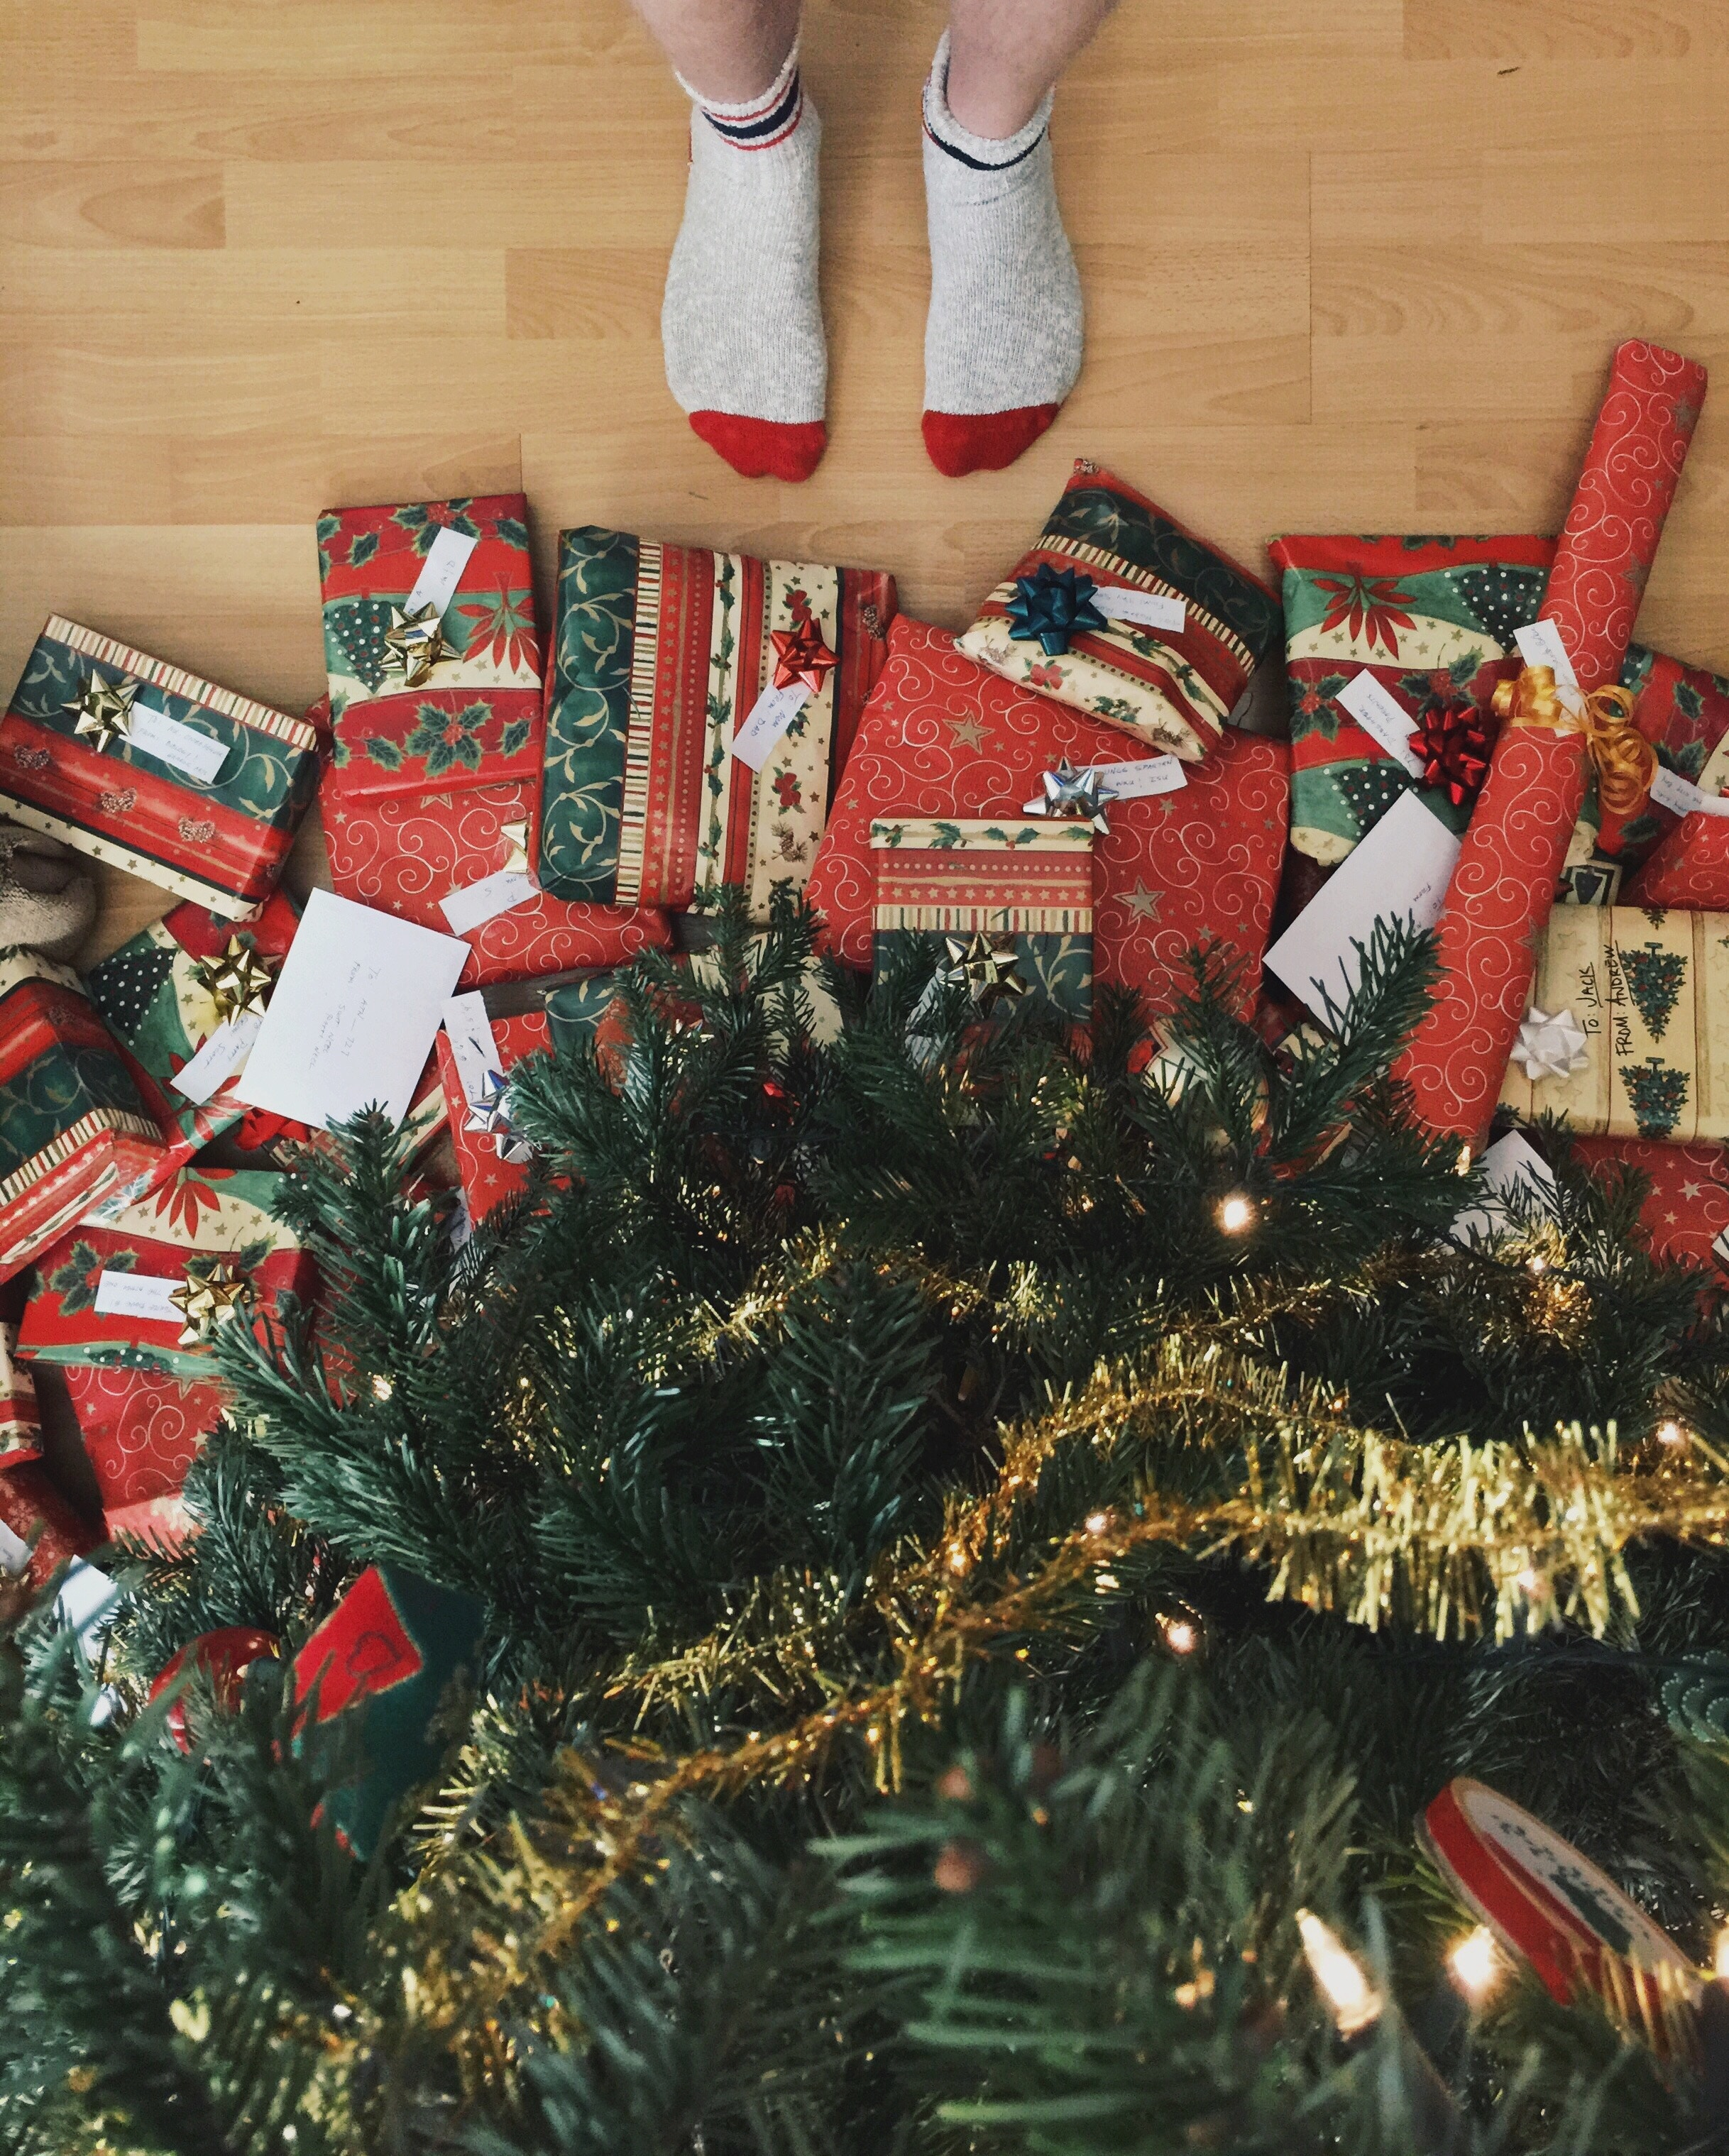 Gifts-under-christmas tree.jpg